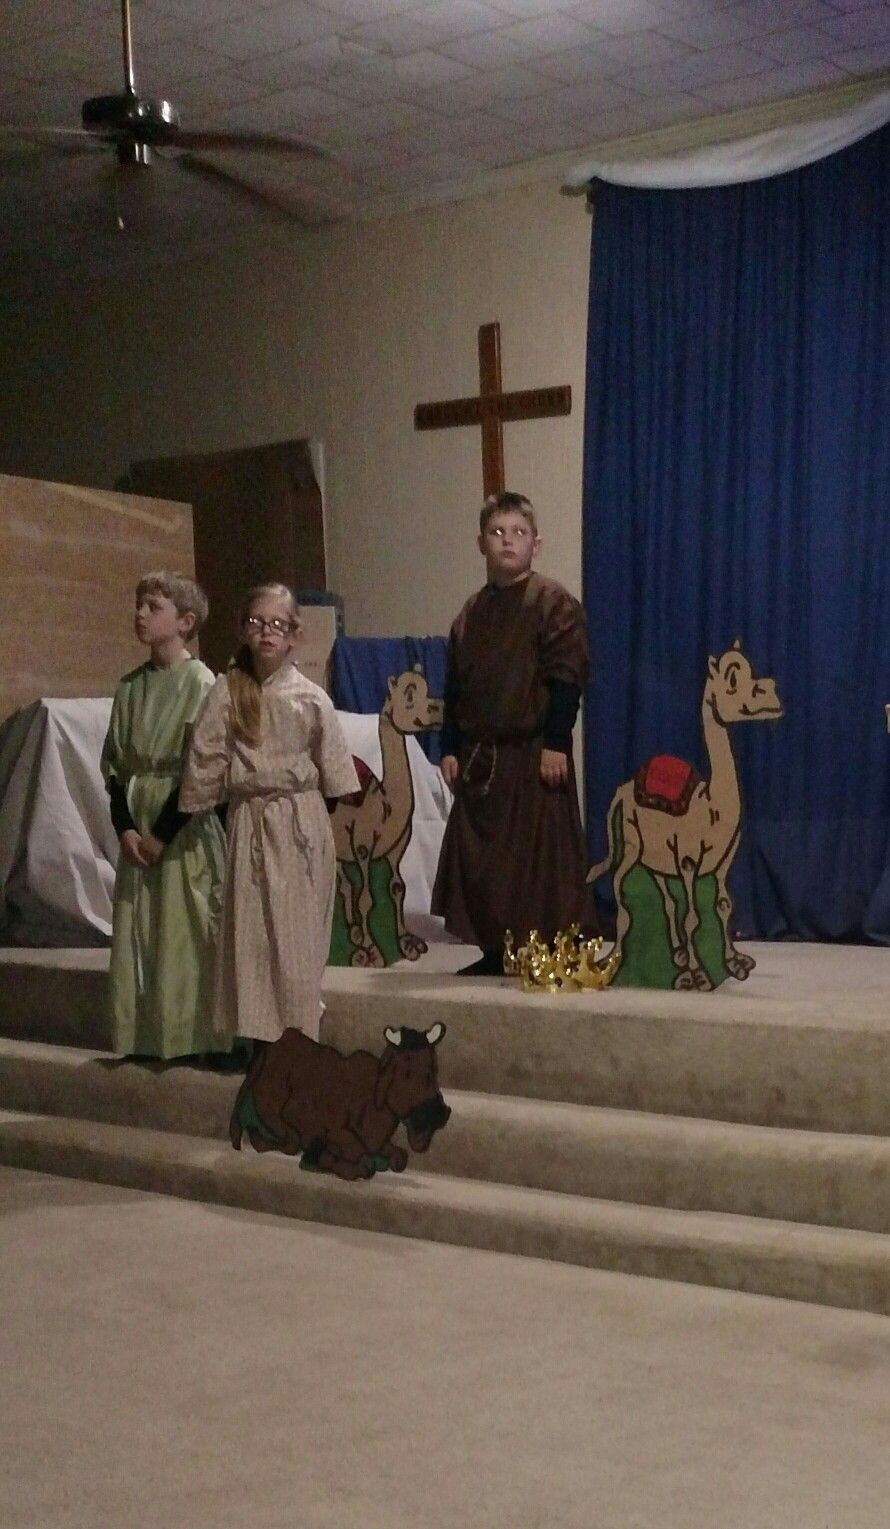 3 Shepherds portrayed by 3 of our youth ( 1 gal & 2 lads )